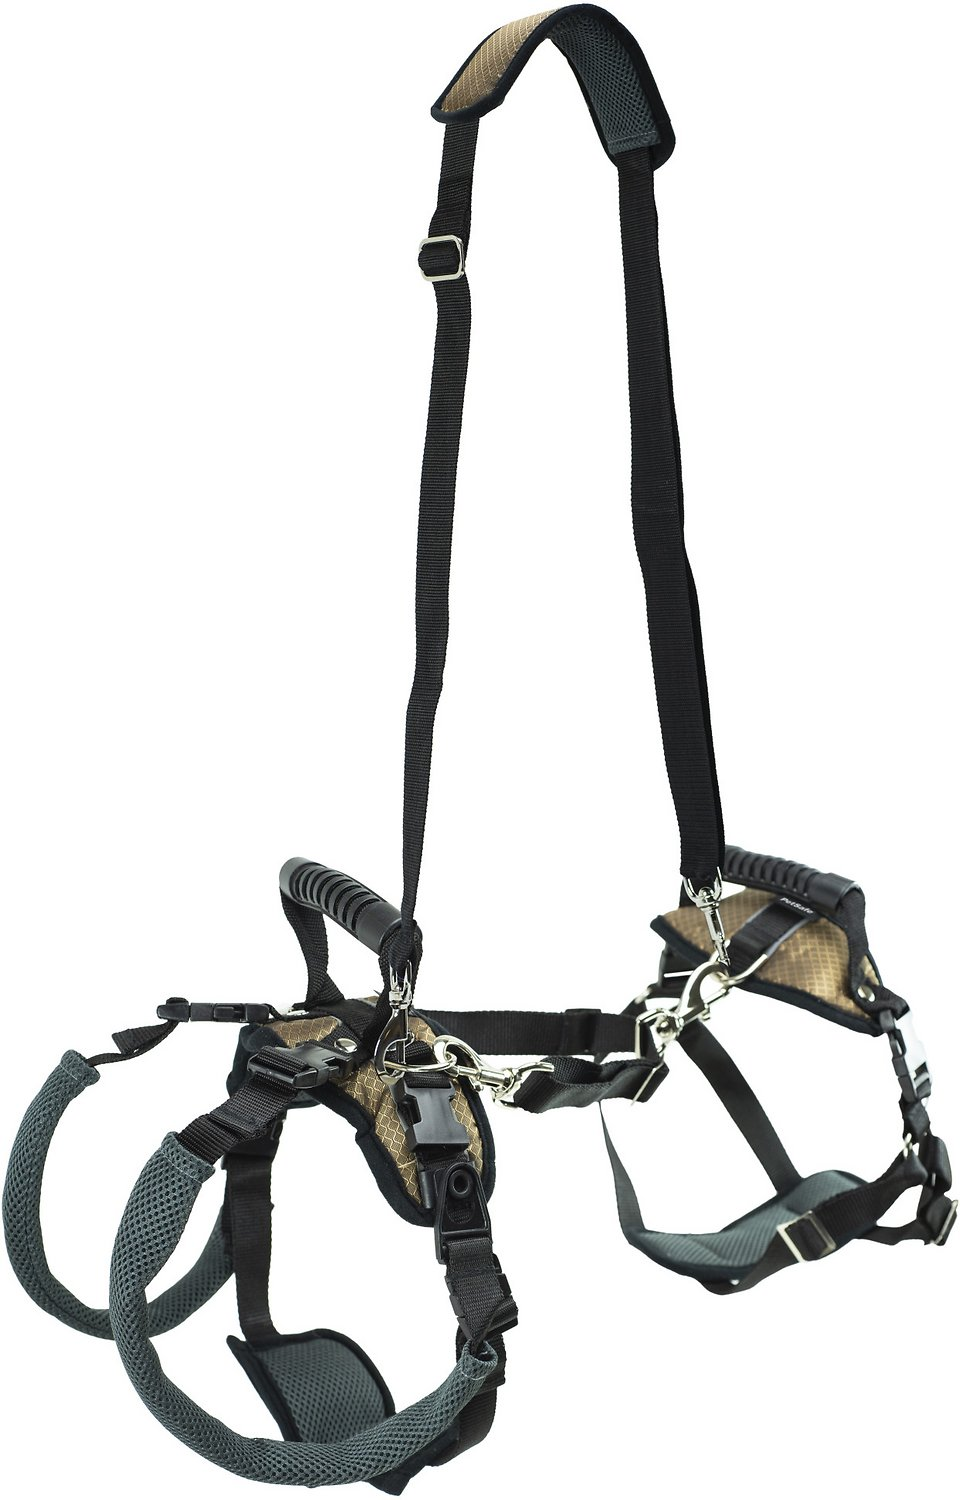 Solvit CareLift Full Front & Back Lifting Aid Mobility Dog Harness